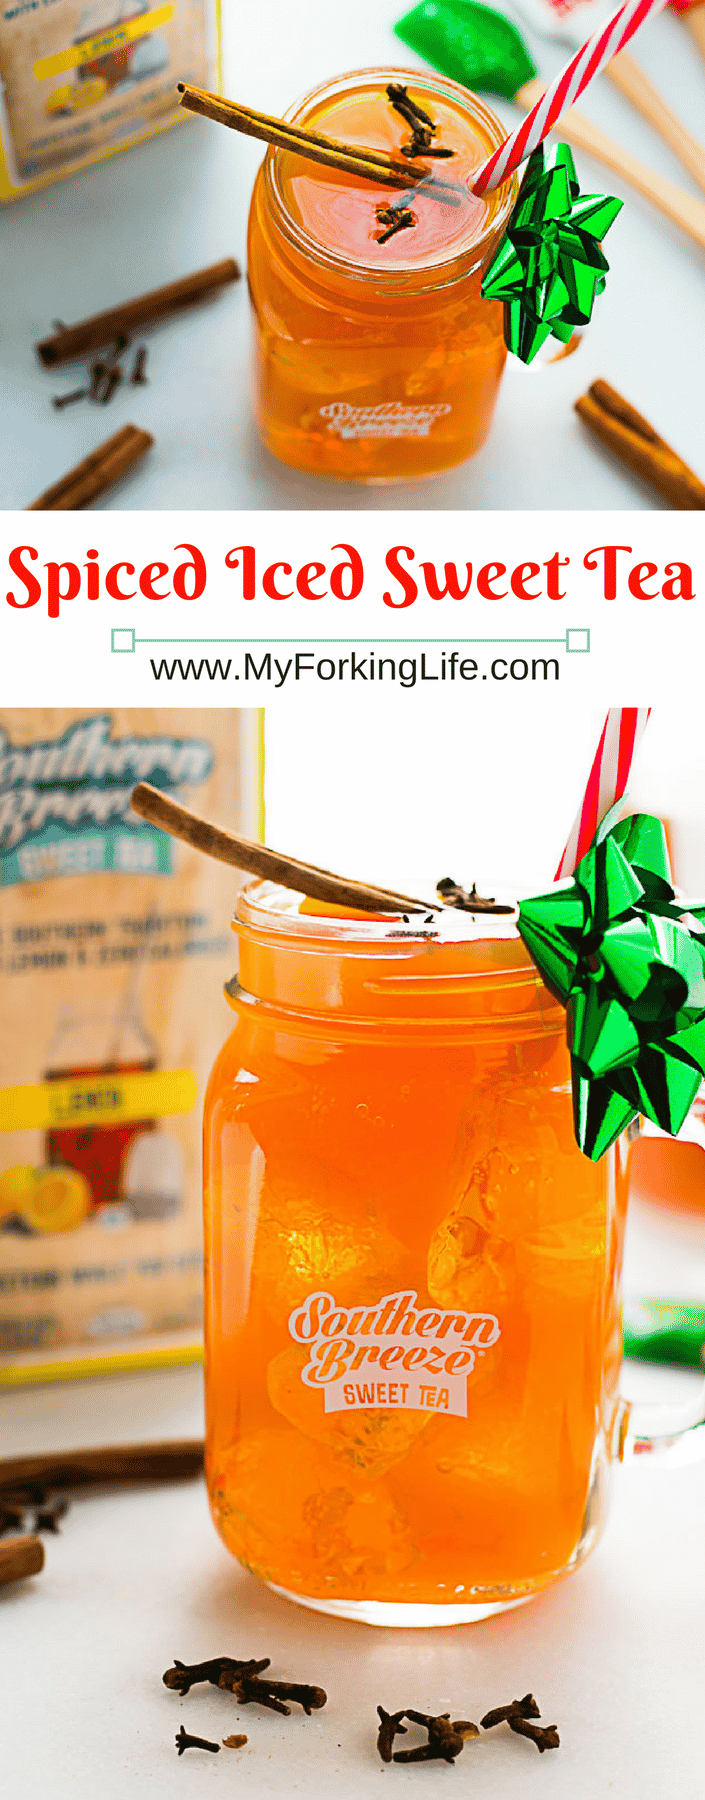 This Spiced Iced Sweet Tea is perfect for the Holidays. Lemon Flavored Sweet Tea, Cinnamon, and cloves make it a sweet and refreshing treat!